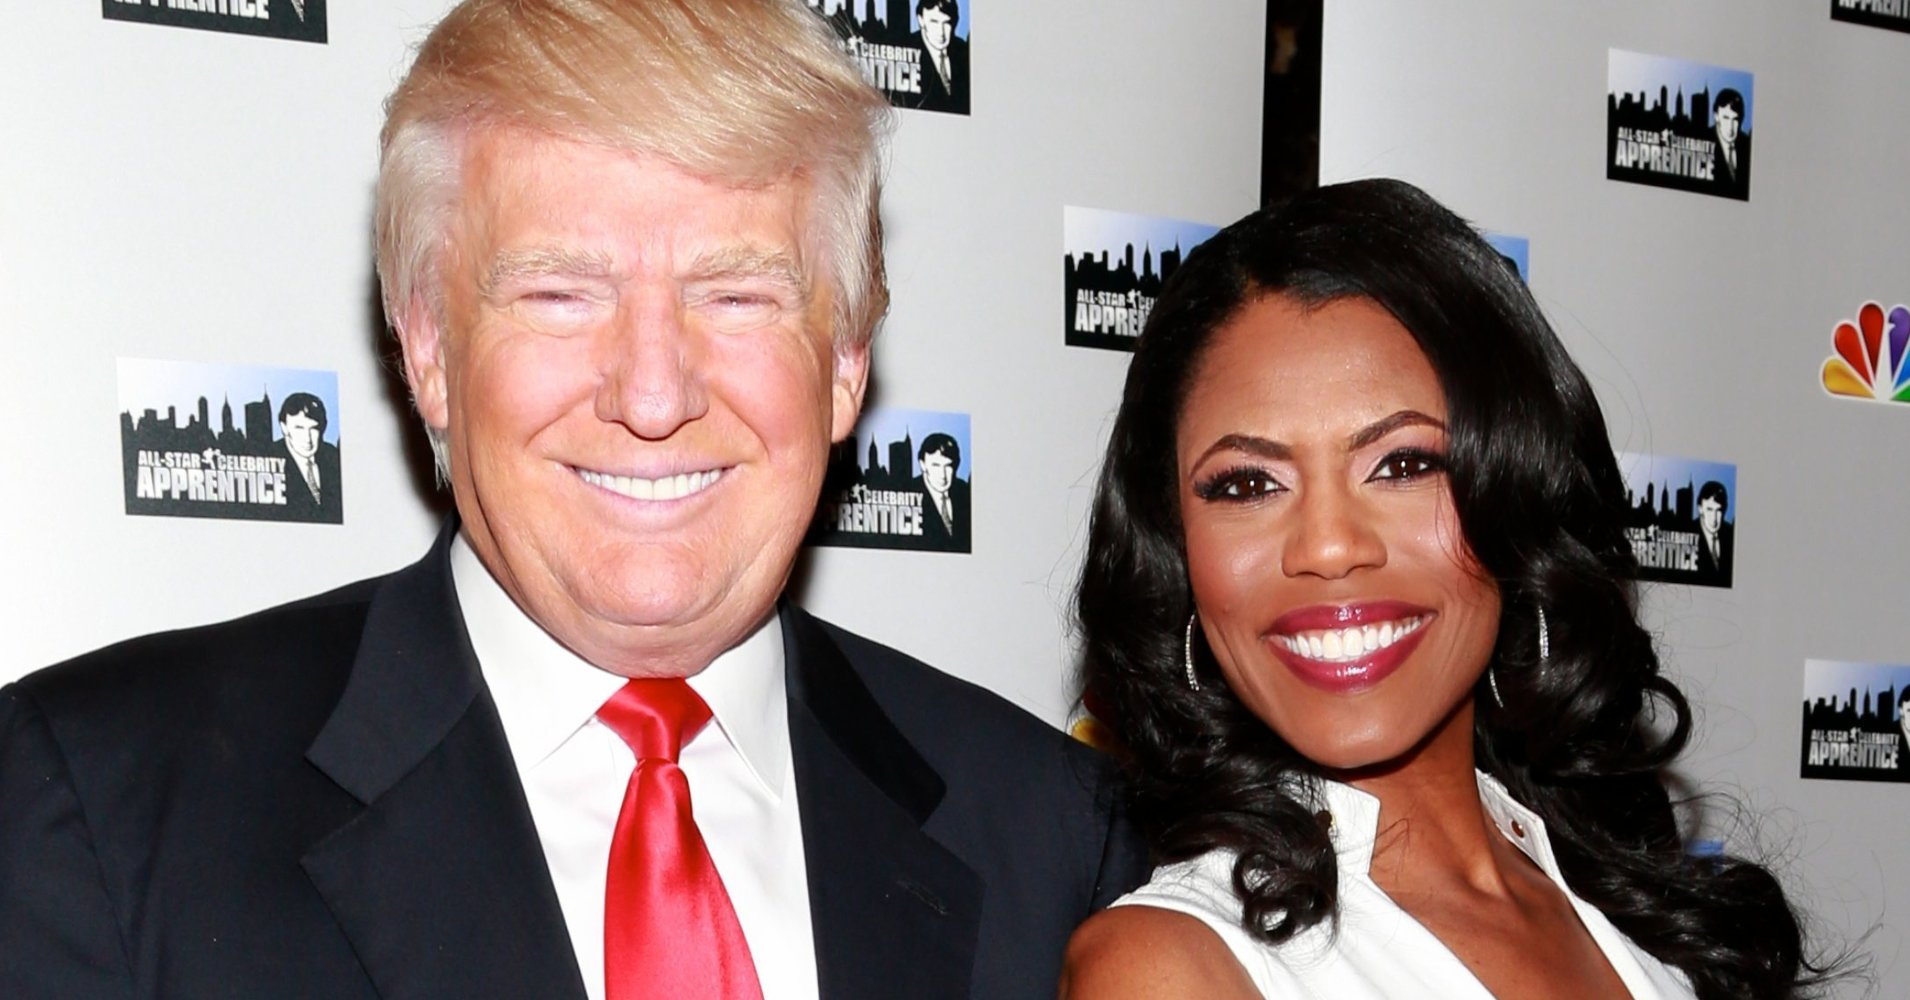 Trump tickles tweeters with curt message to Omarosa https://t.co/rucYHc4PVi https://t.co/goXo2TcSfp